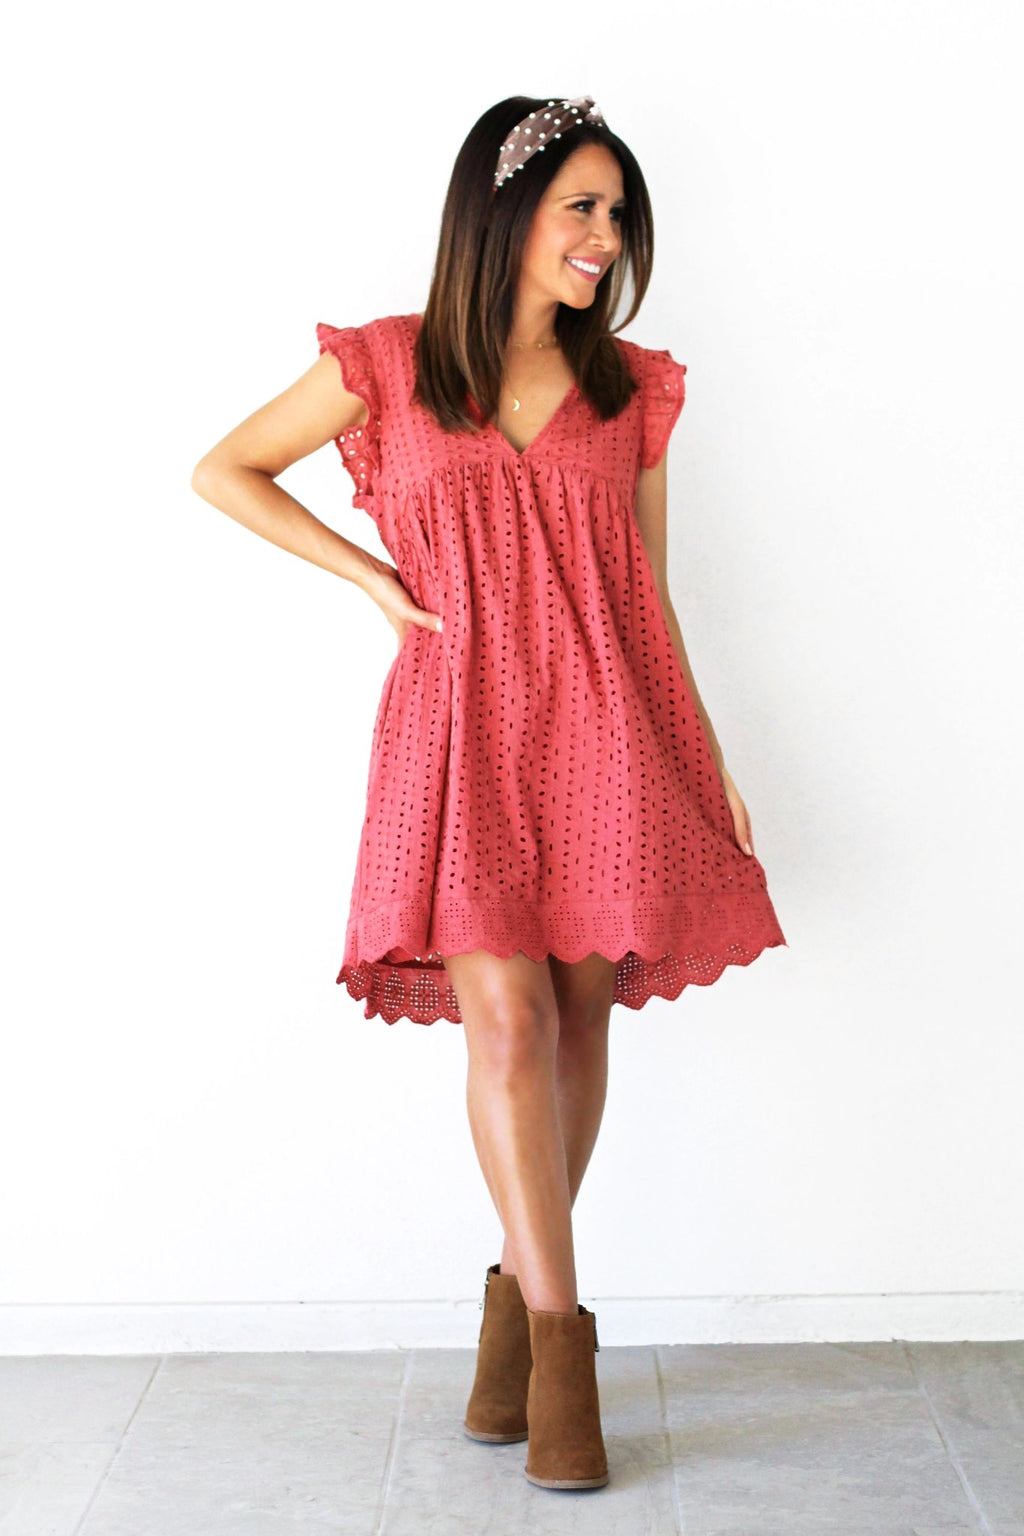 eyelet lace romper dress